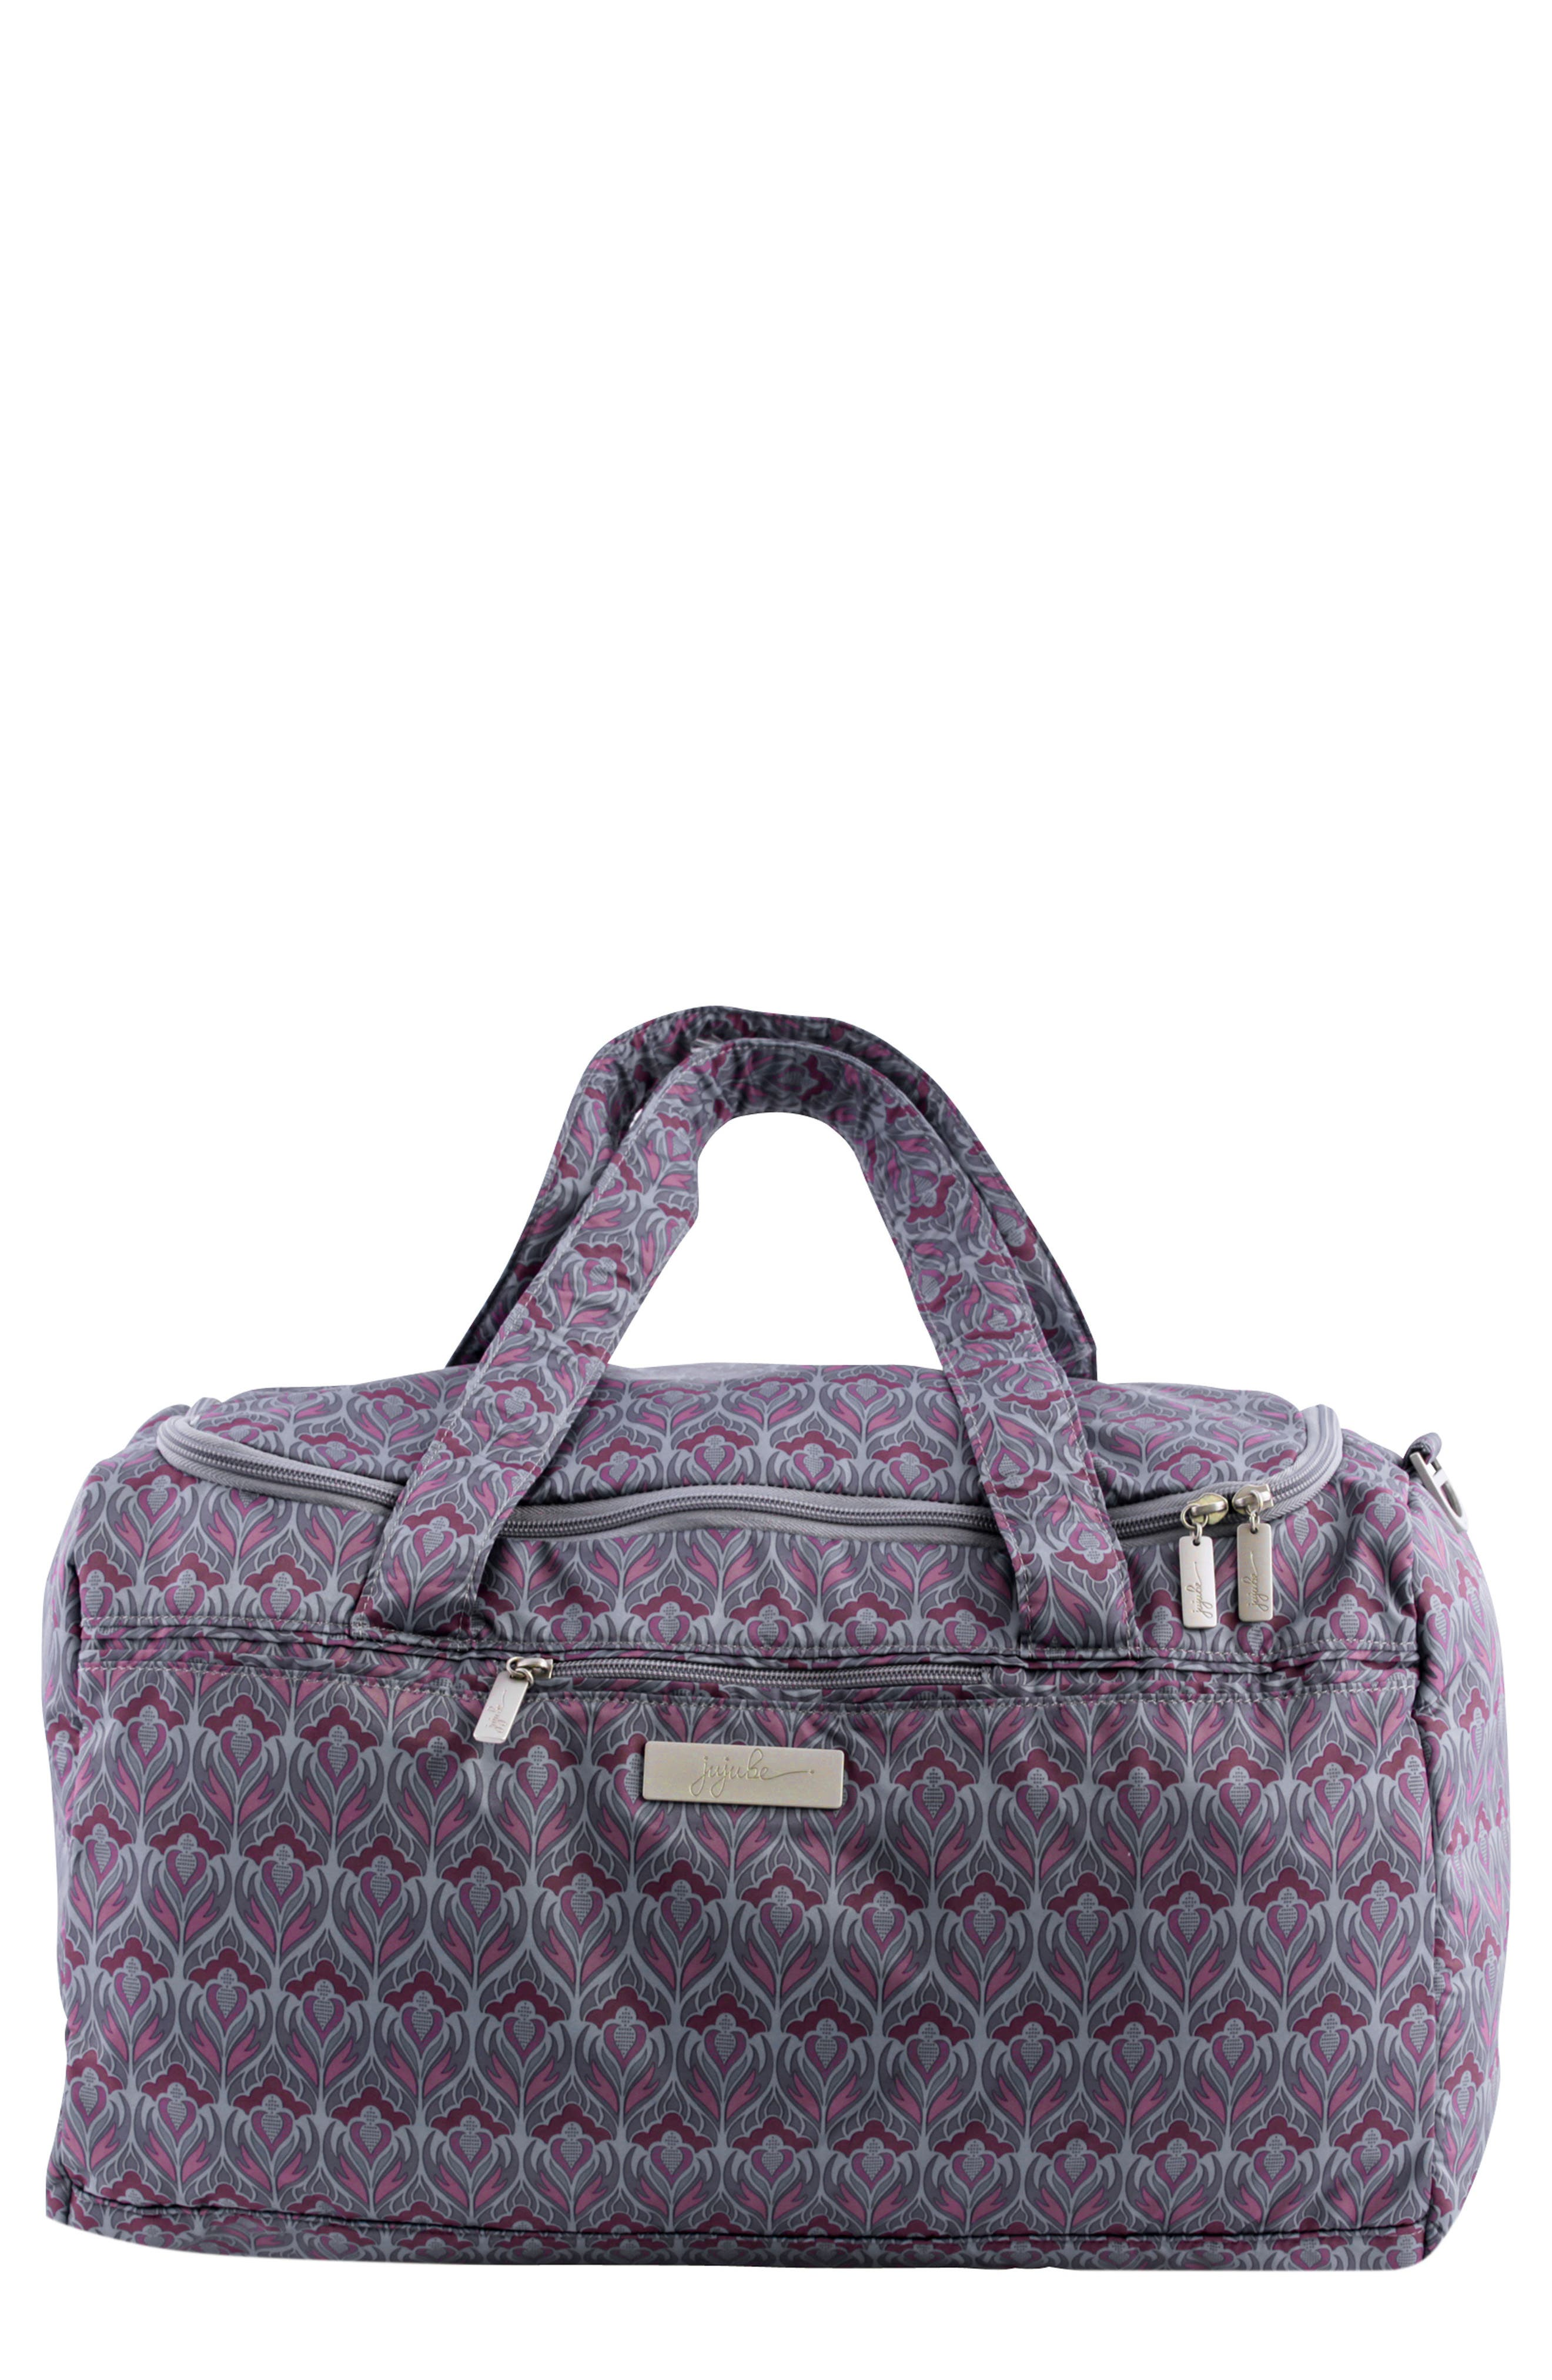 'Starlet' Travel Diaper Bag,                         Main,                         color,